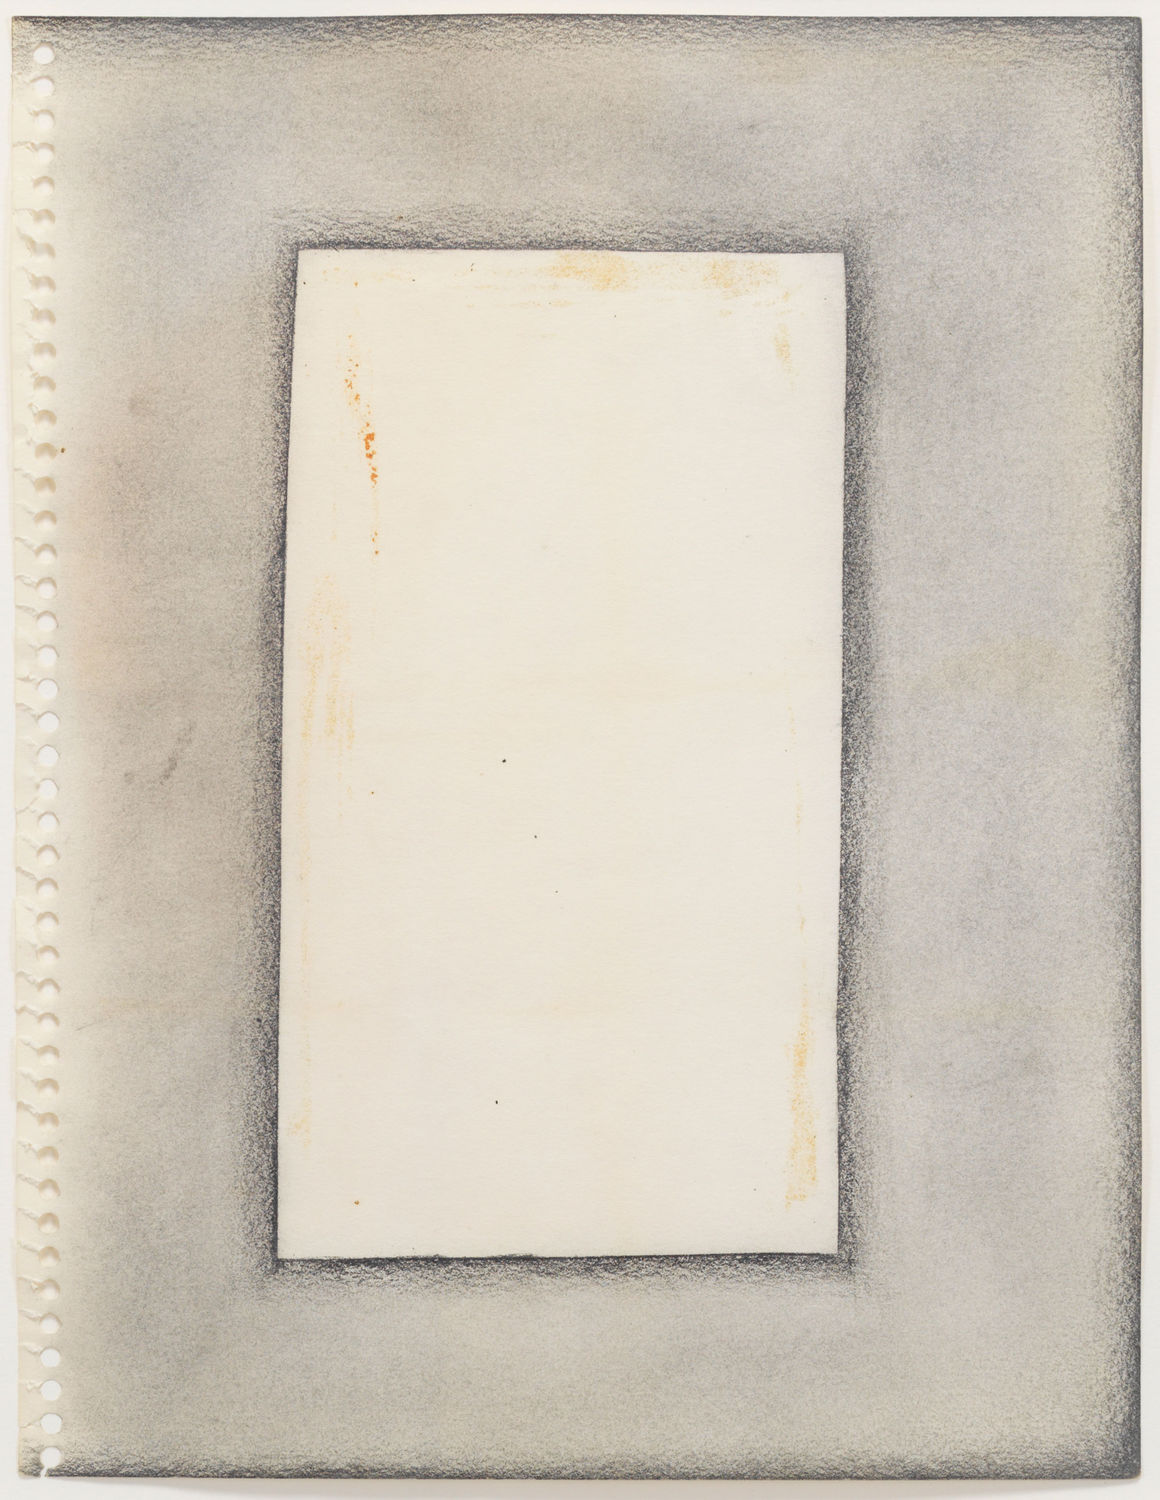 Adrian Piper. Drawings about Paintings and Writings about Words #5. 1967.